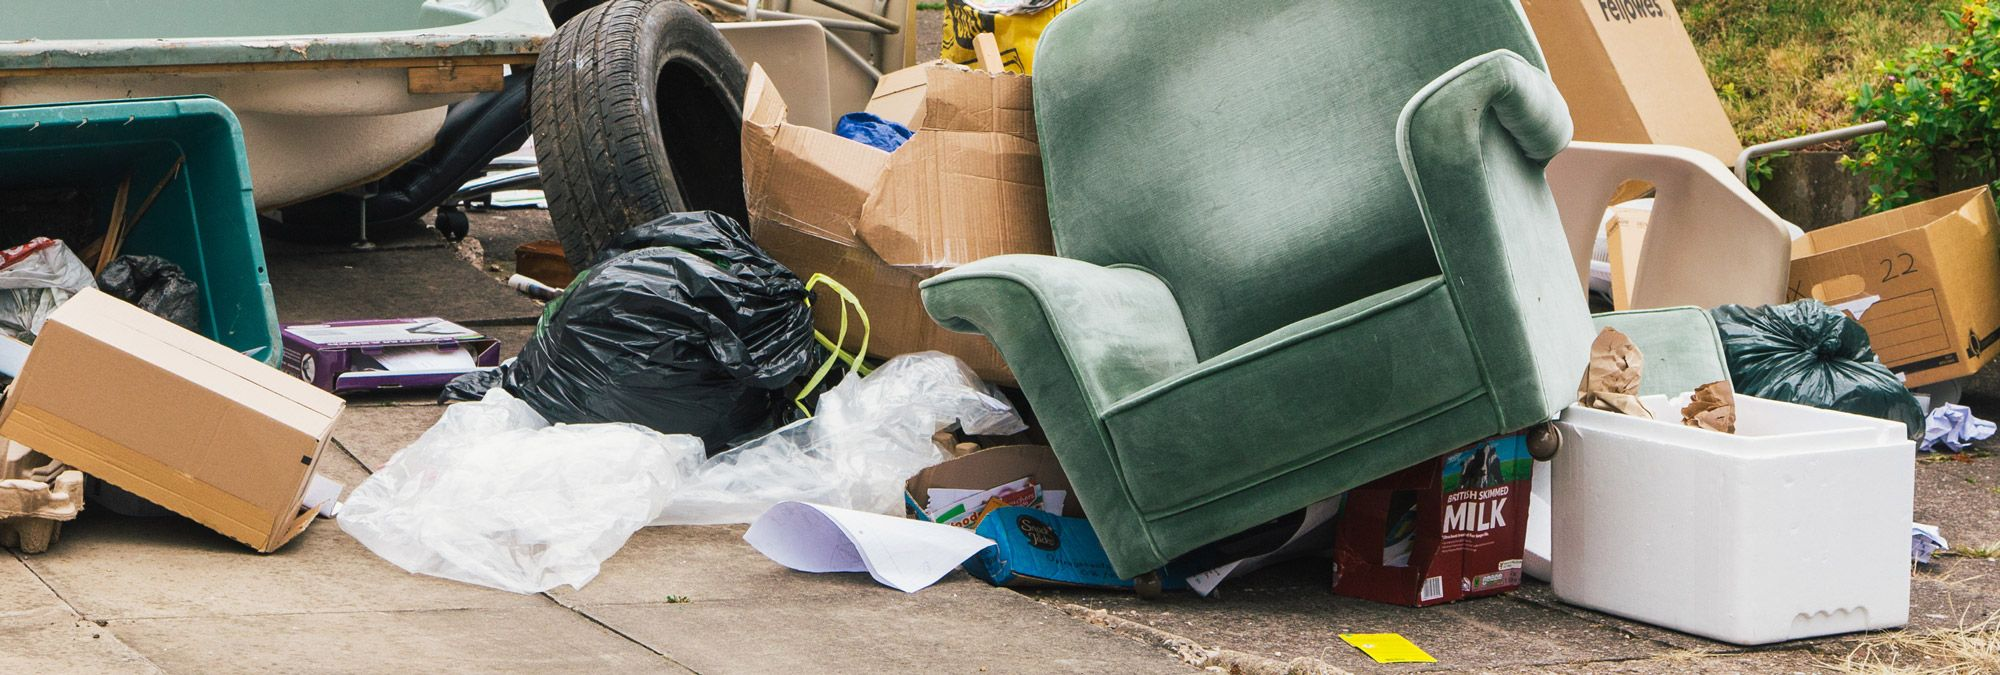 Bulky Waste Collections in your Area: A Guide